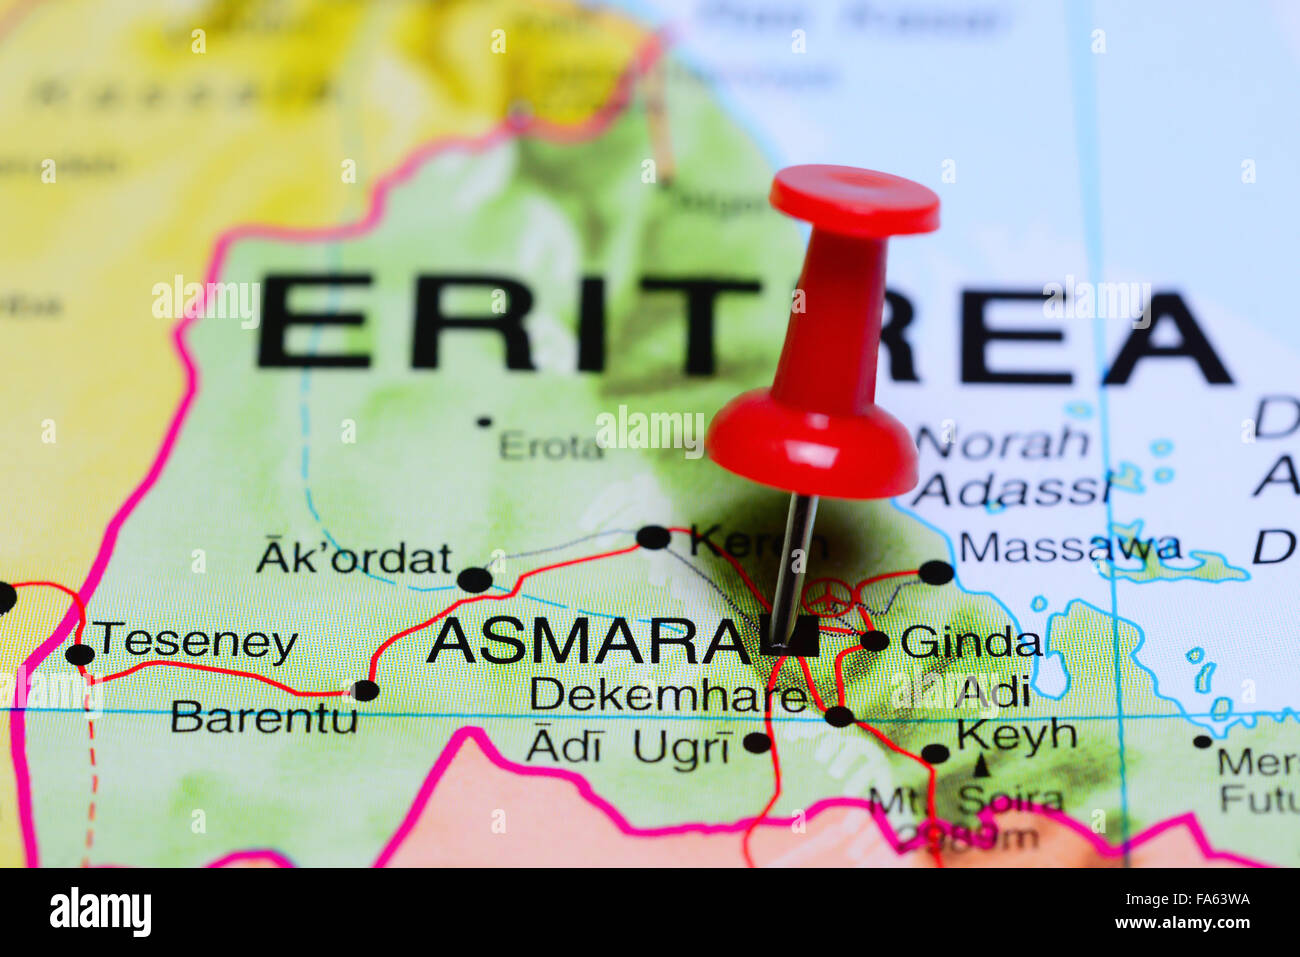 Asmara pinned on a map of africa stock photo 92333174 alamy asmara pinned on a map of africa ccuart Images